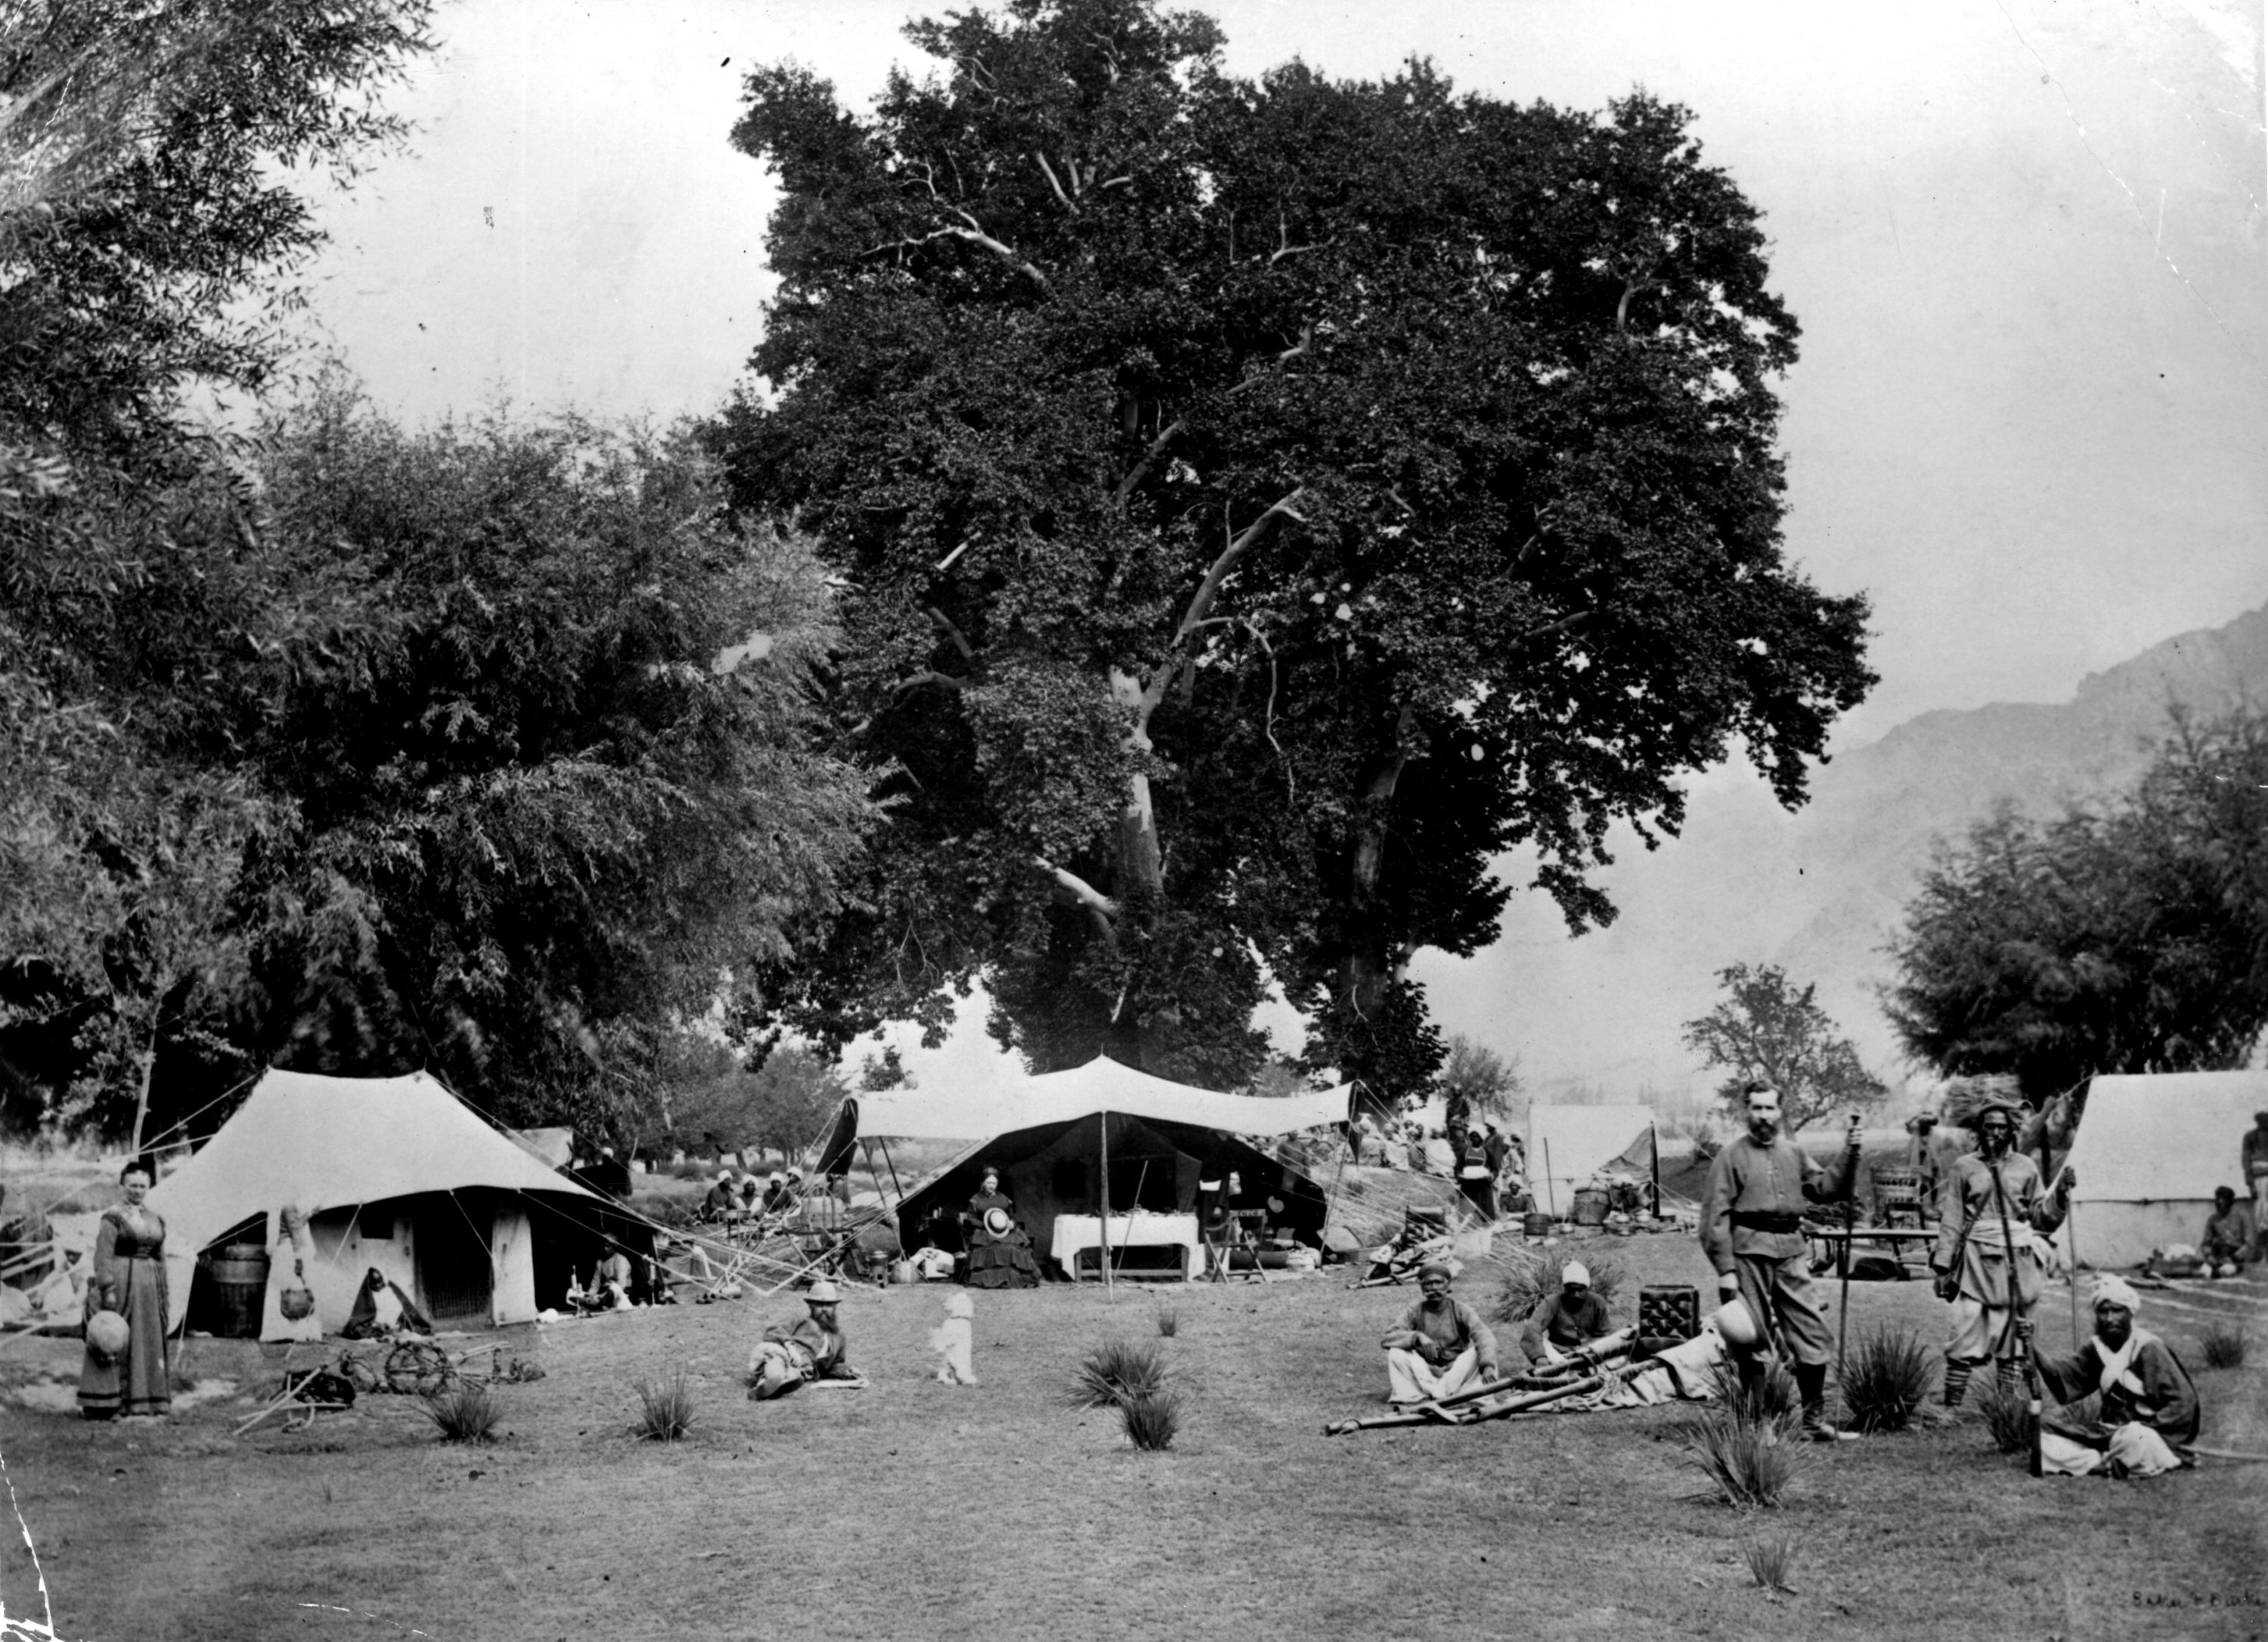 A British encampment with Indian soldiers in attendance, Kashmir, 1885. (Photo by Getty Images)